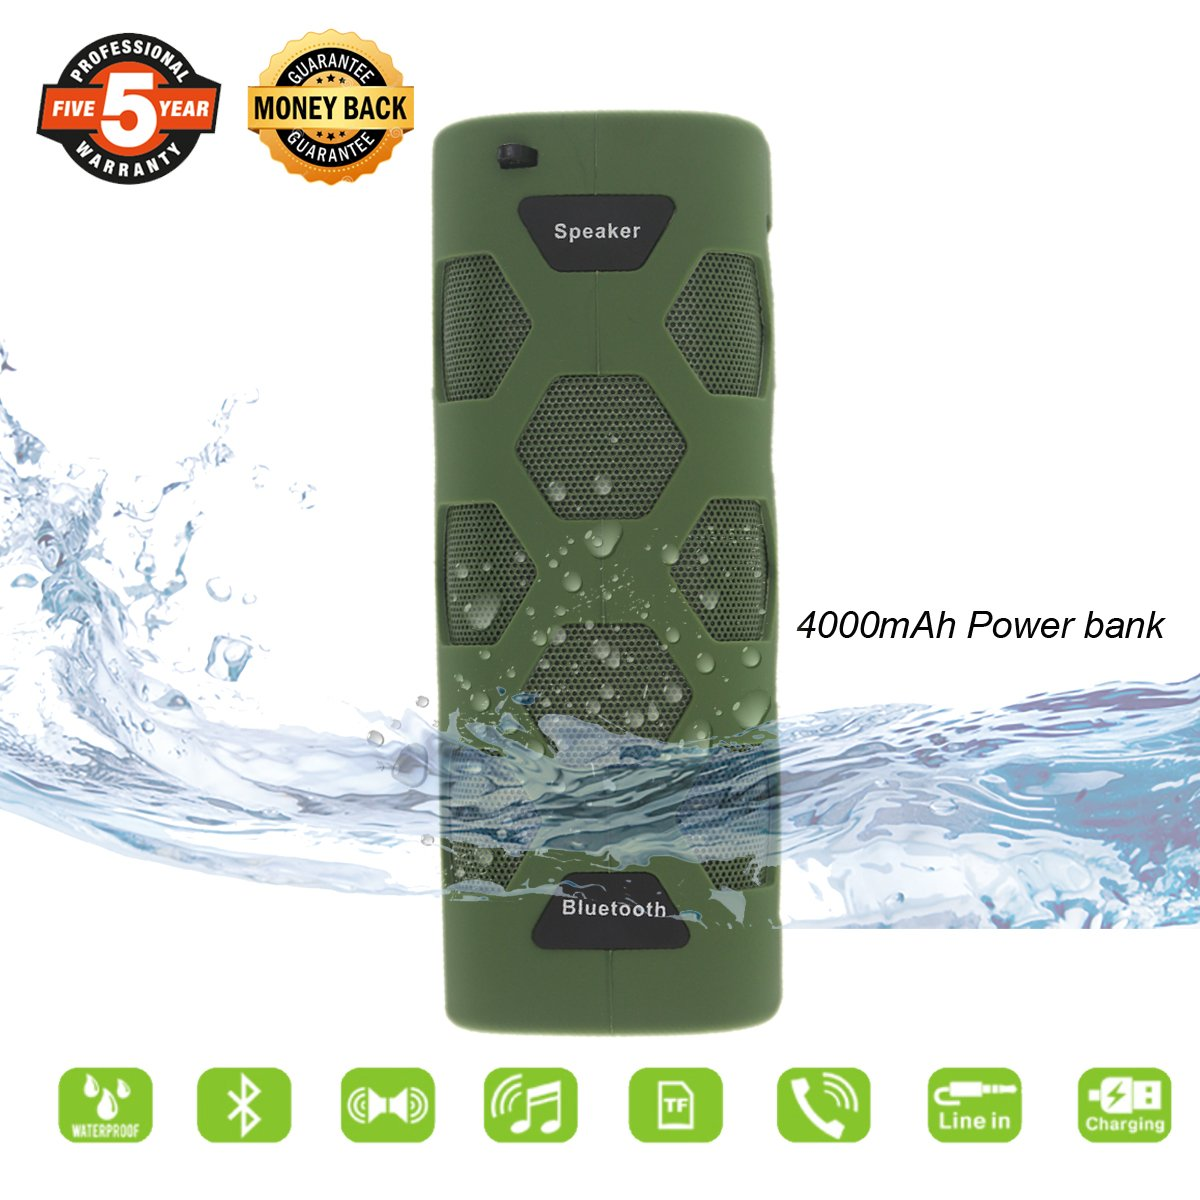 Outdoor Bluetooth Speaker,Waterproof Portable Bluetooth Speaker with HD Audio and Enhanced Bass,Built-In Dual Driver Speakerphone,Handsfree Calling and Portabel Wireless Speaker for Camping (Green)